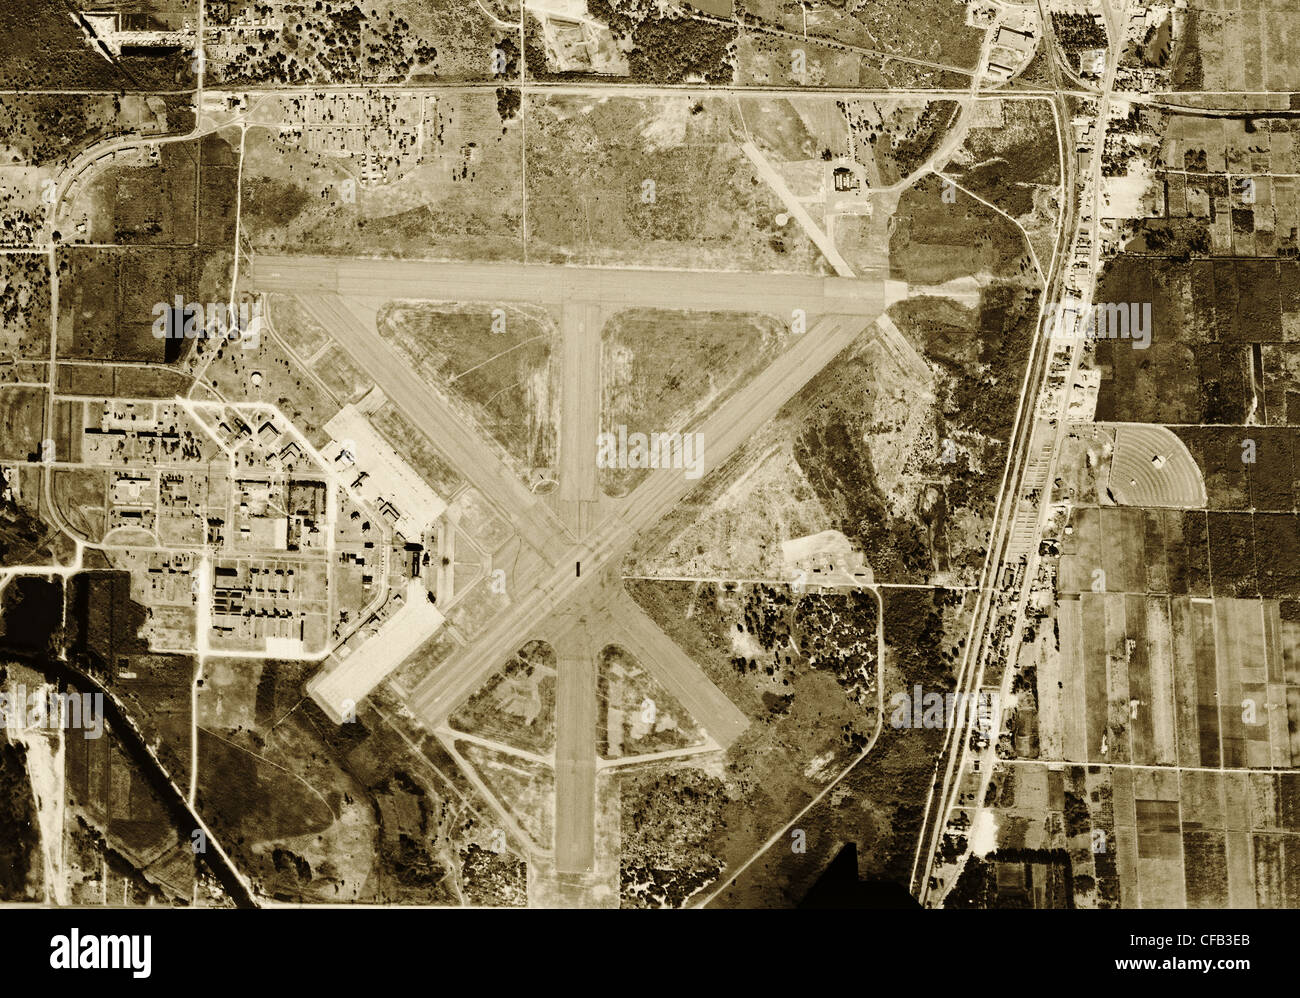 Historical Aerial Photograph Fort Lauderdale Hollywood